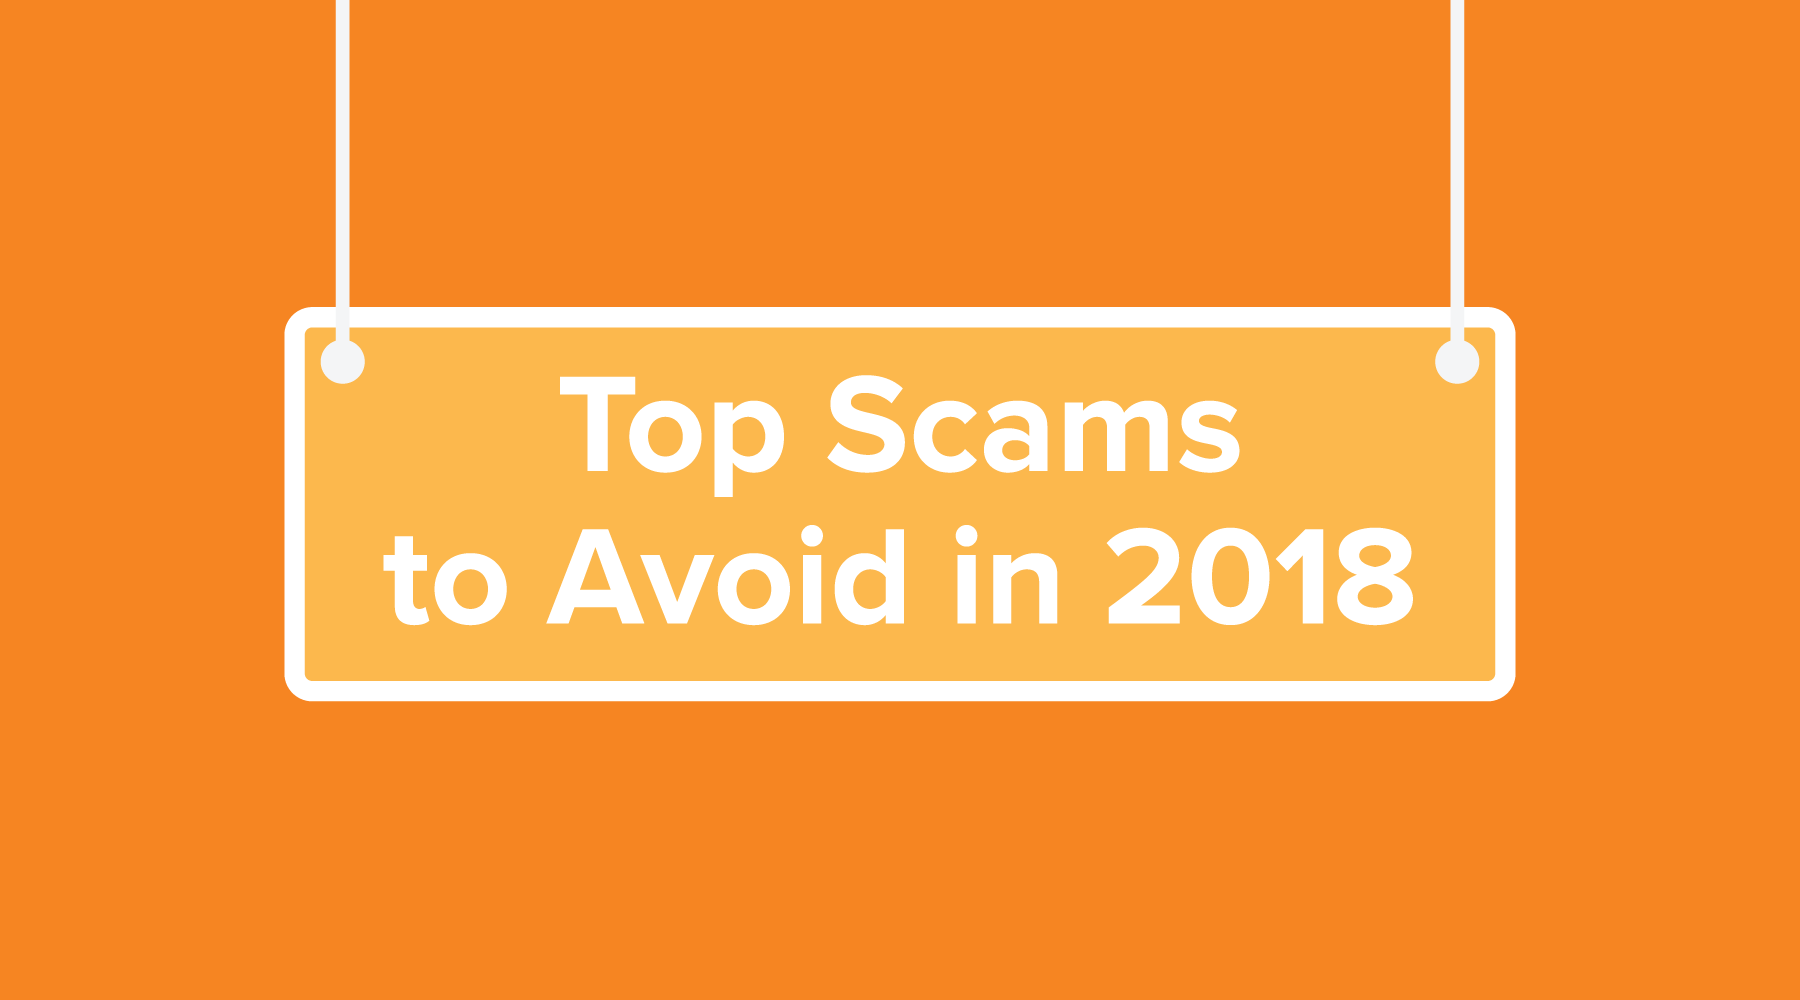 Top Scams to Avoid in 2018 - Forward Thinking | Tangerine